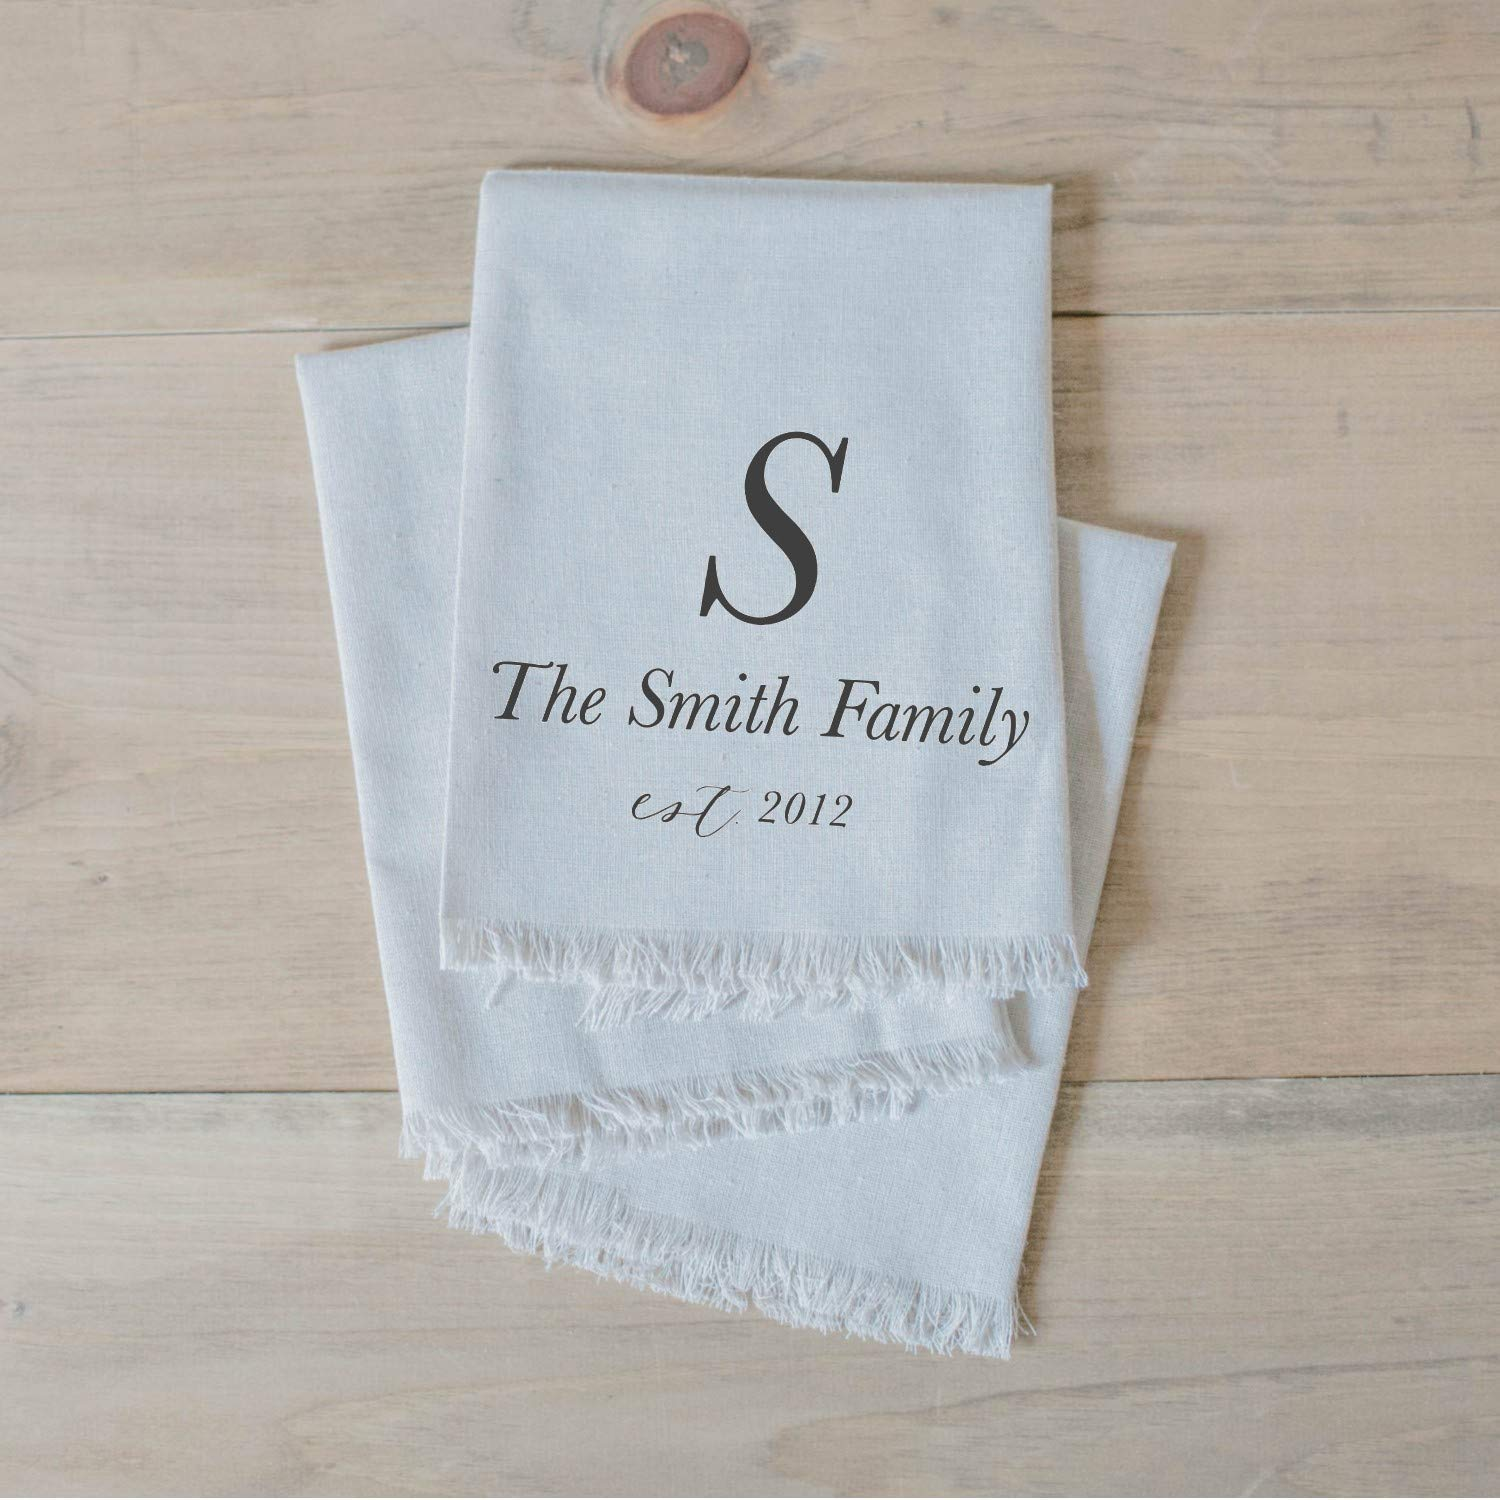 home decor table setting home decor tableware Handmade in the USA housewarming gift dinner party place setting Family Initial and Name Personalized Napkin Set